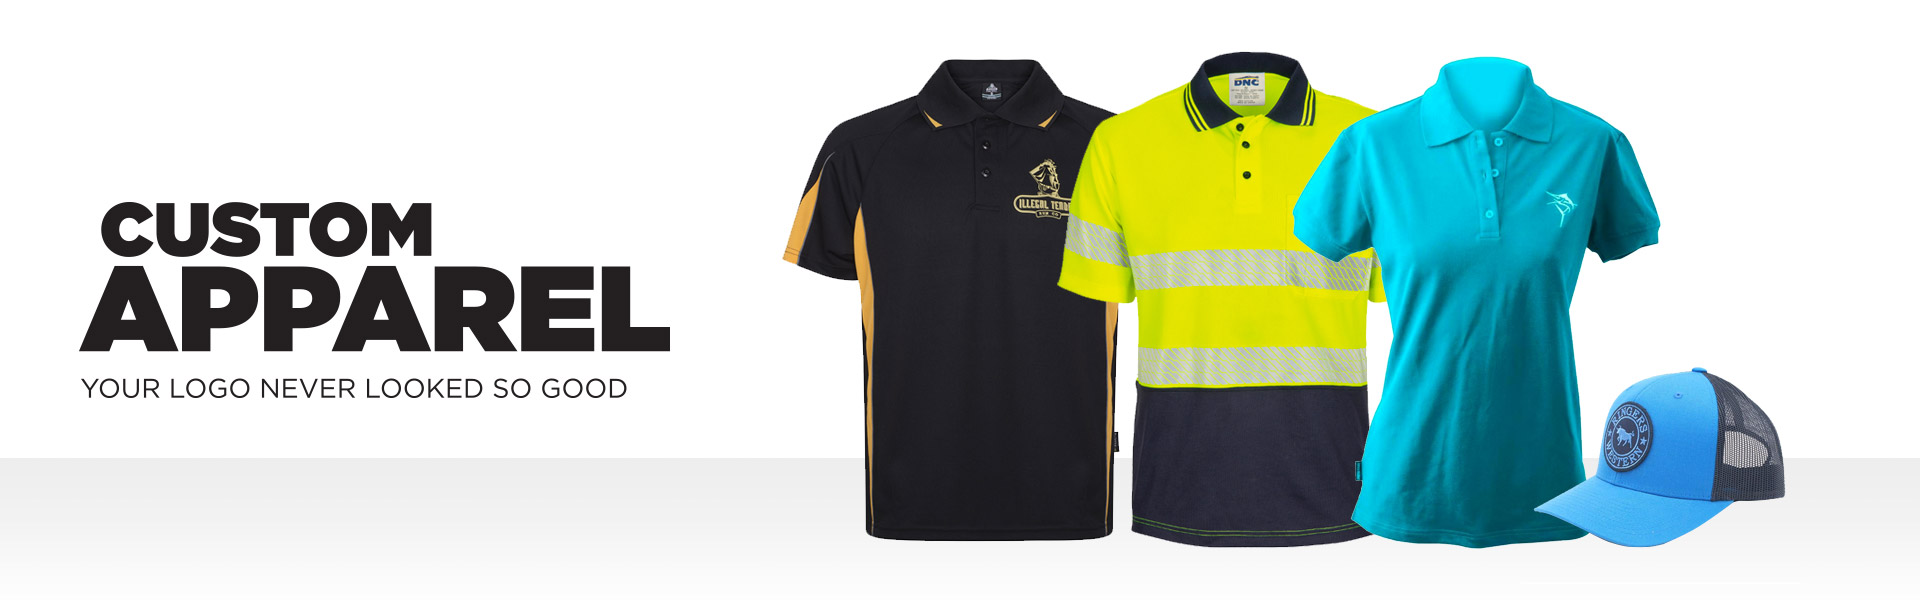 Corporate Apparel Mediamix Promotions